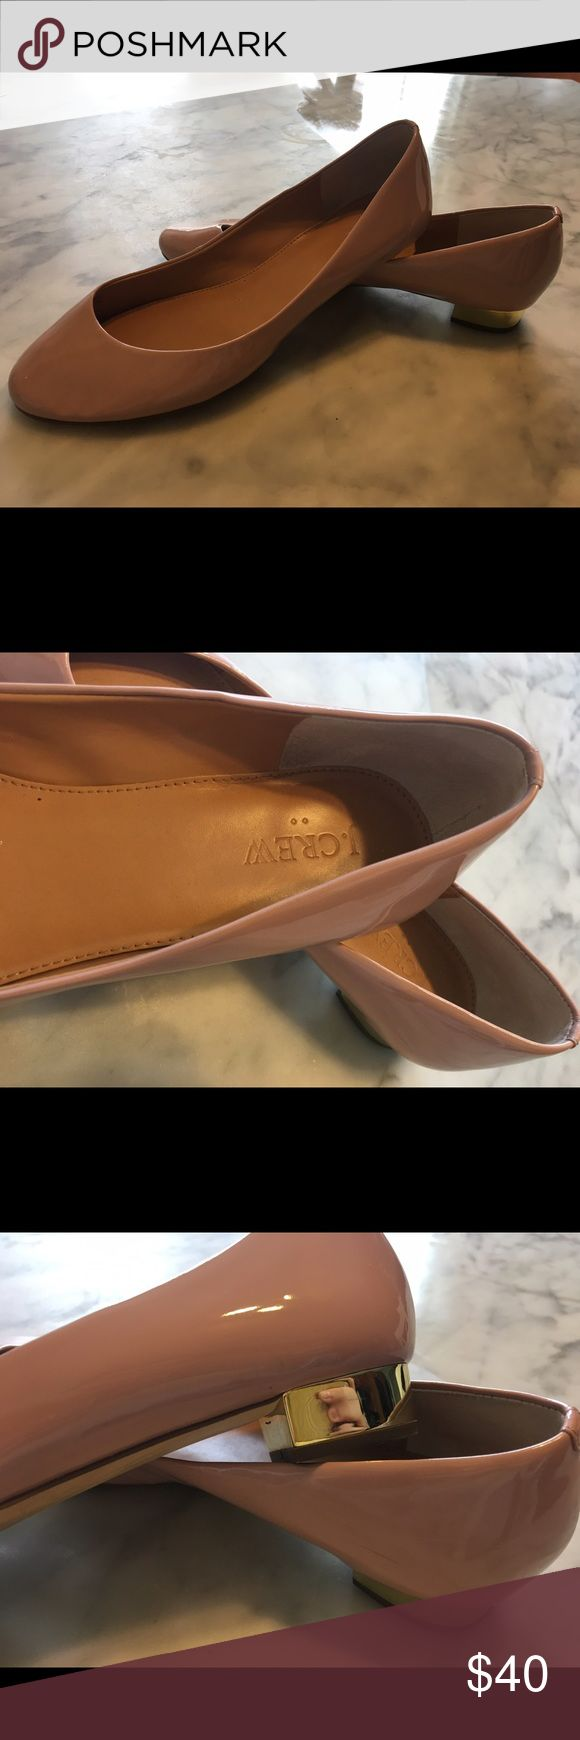 J Crew Flats Gently worn J Crew Flats with gold heel. See last picture true for true color. J. Crew Shoes Flats & Loafers